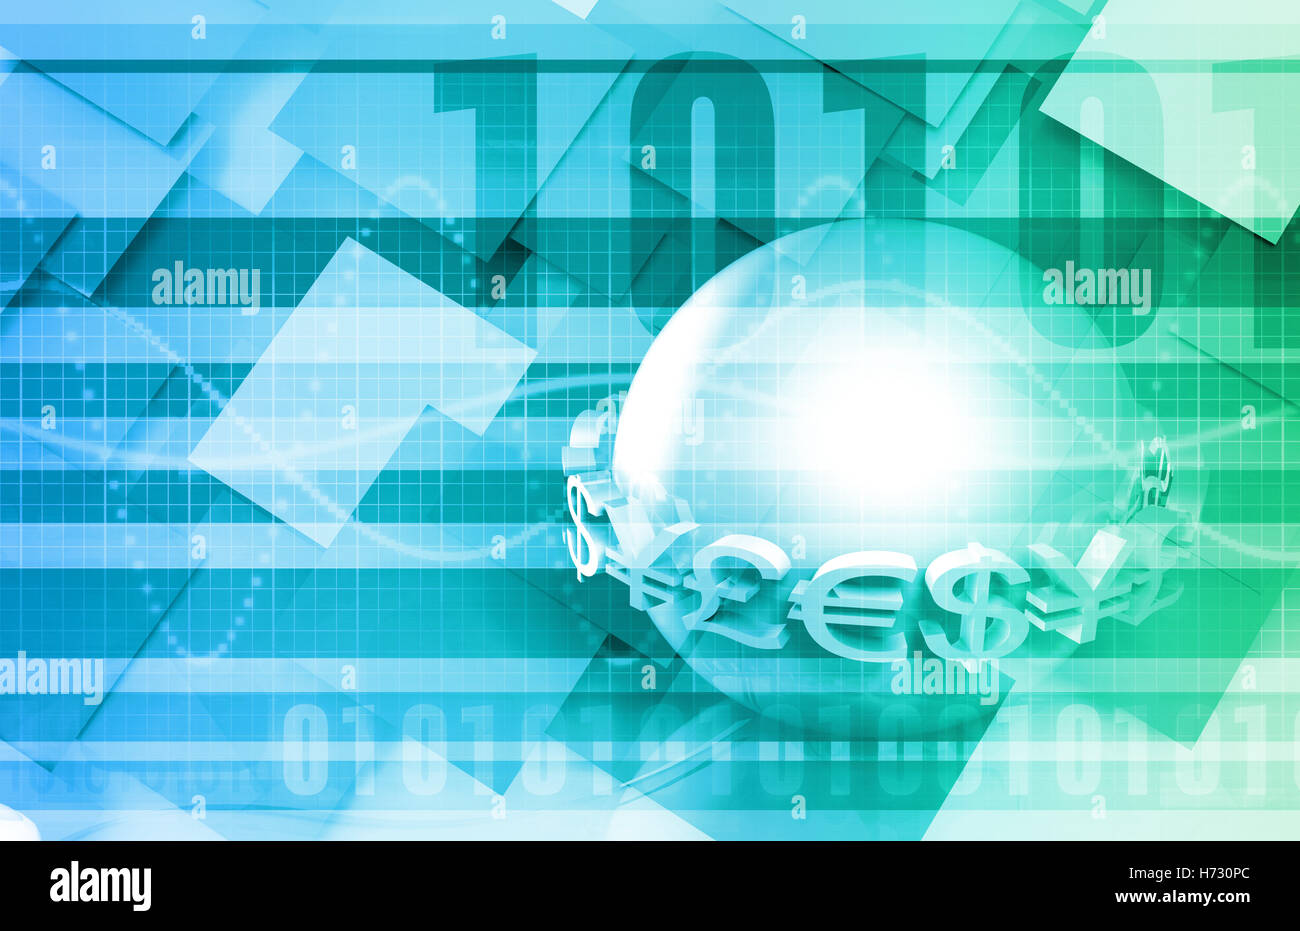 seminar dollar dollars type career presentation model build american currency asia euro europe learn hedge connection - Stock Image